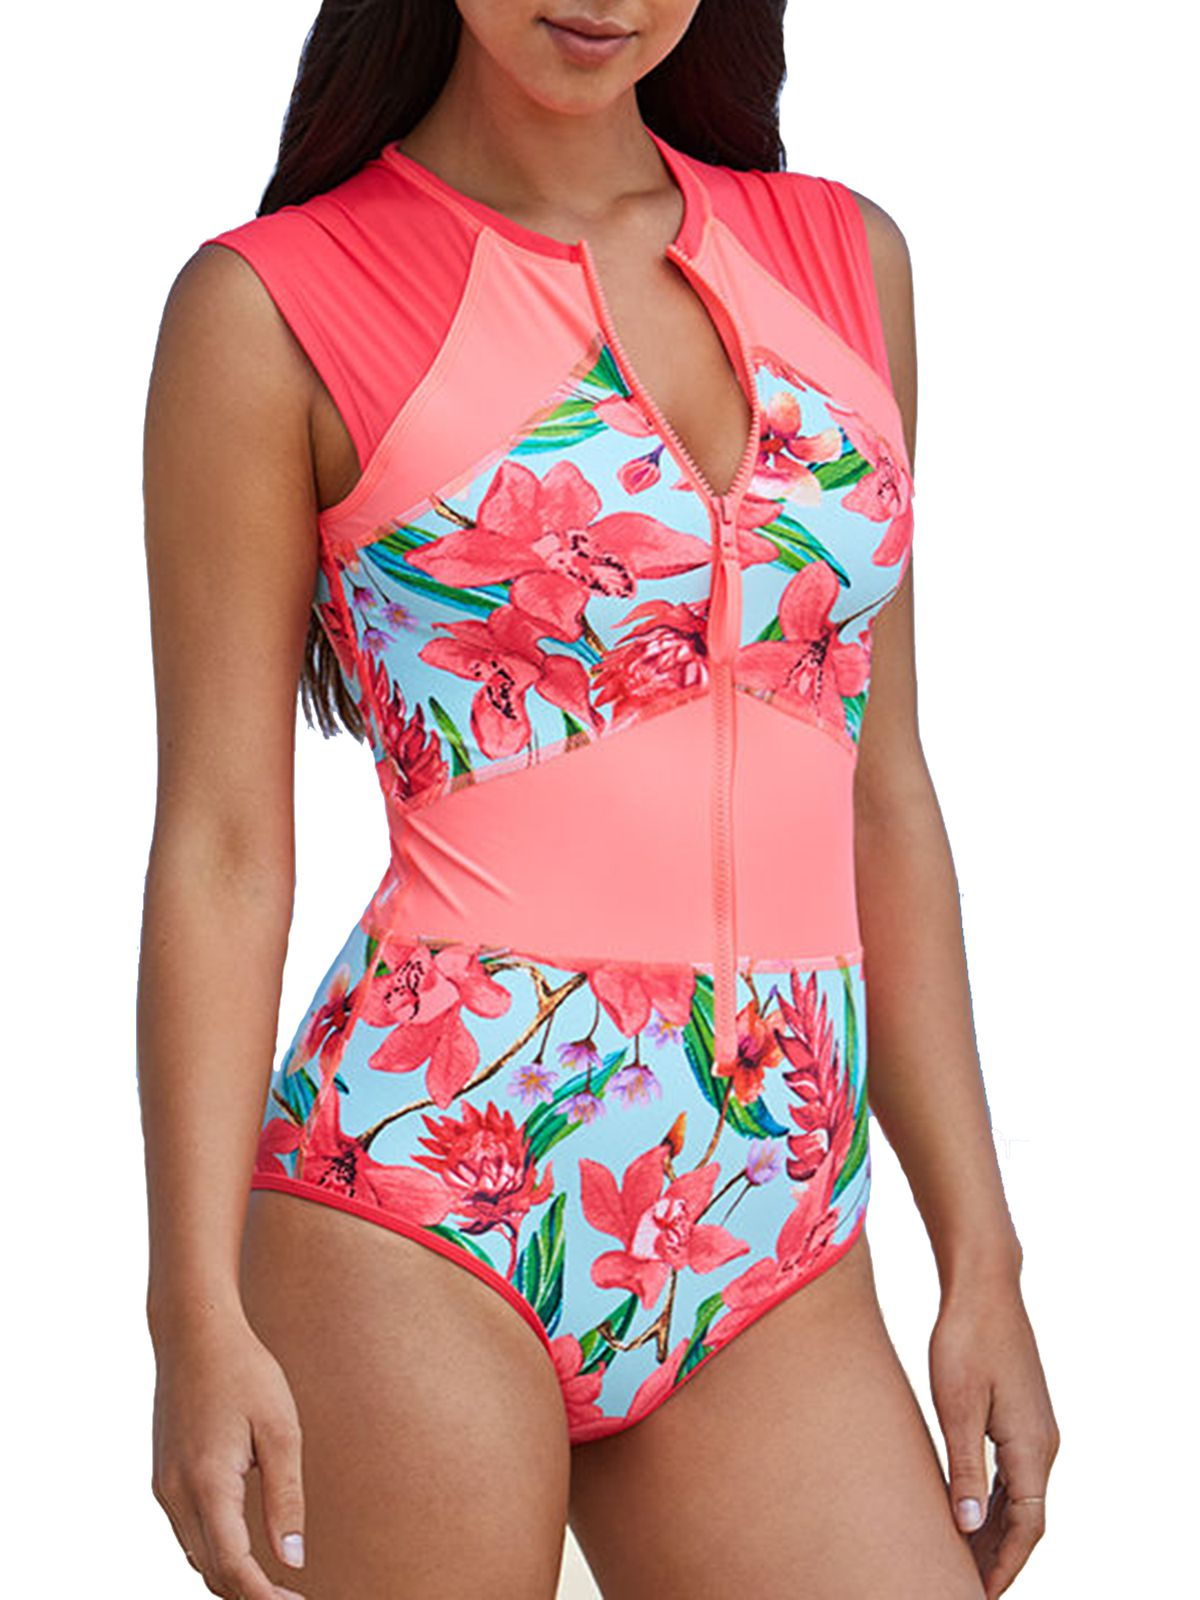 Body Glove Stand Up Zip Front One Piece Swimsuit, $132